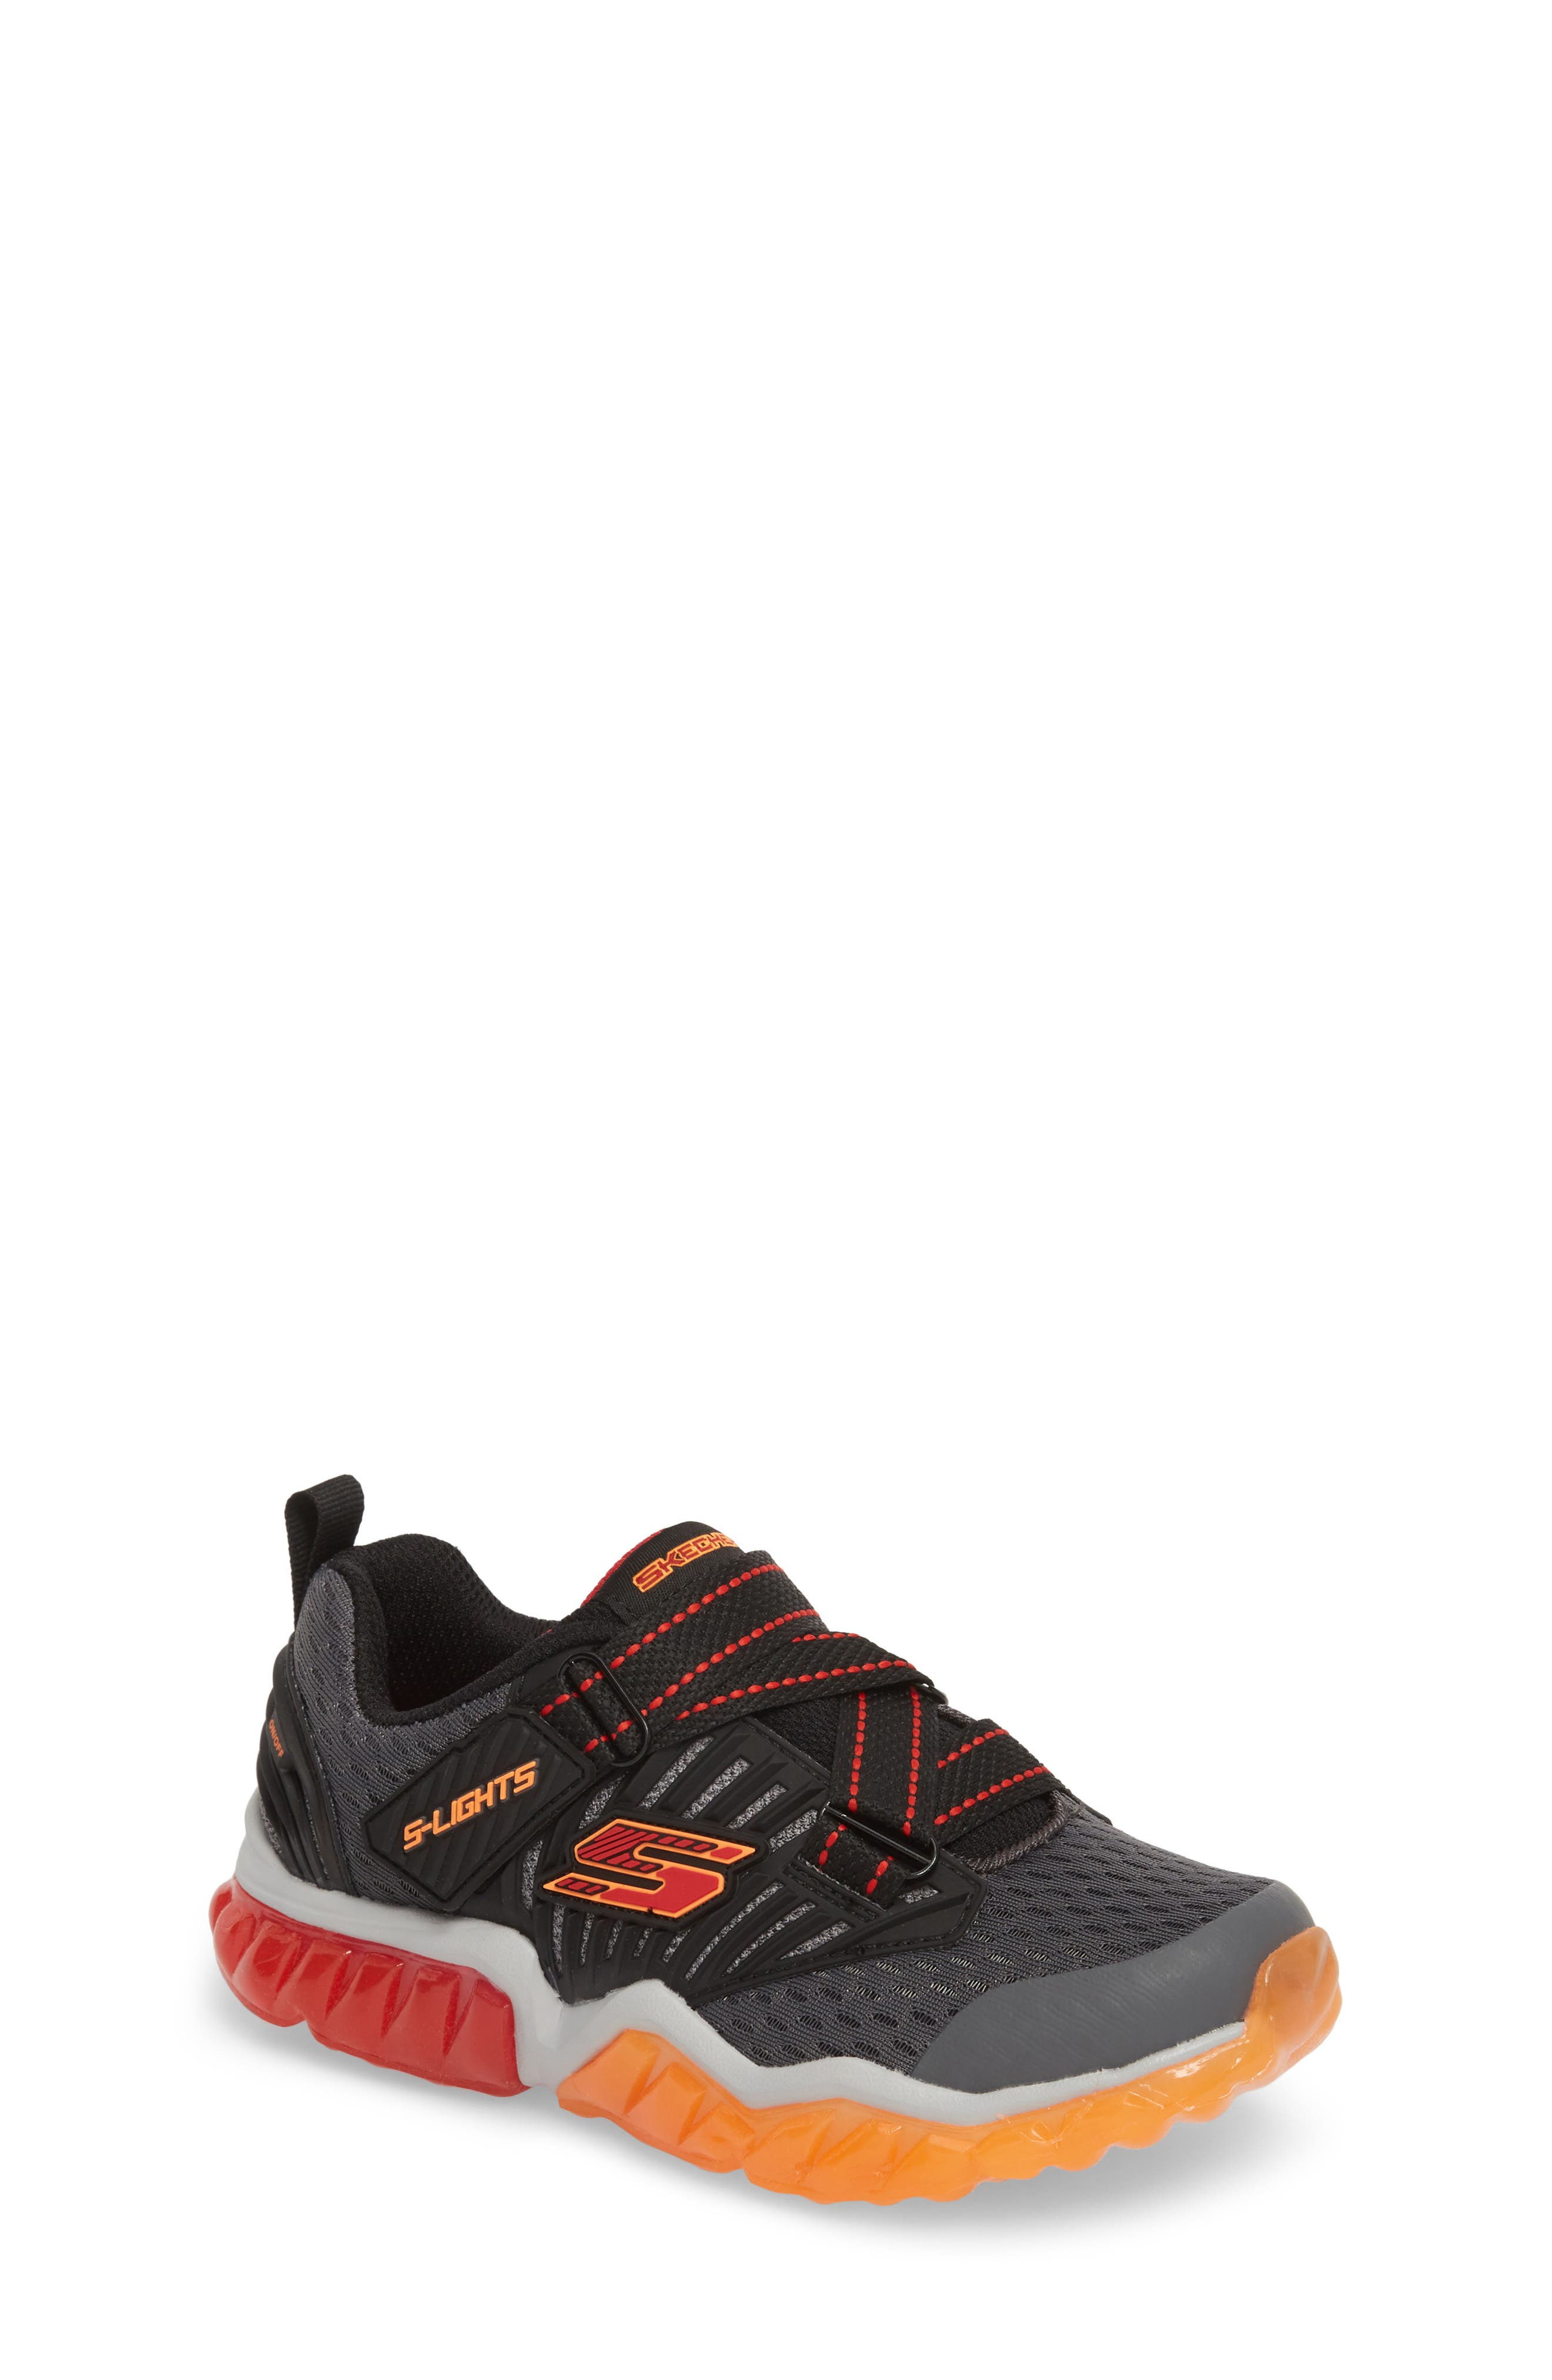 Rapid Flash Light-Up Sneaker,                         Main,                         color, Charcoal/ Red